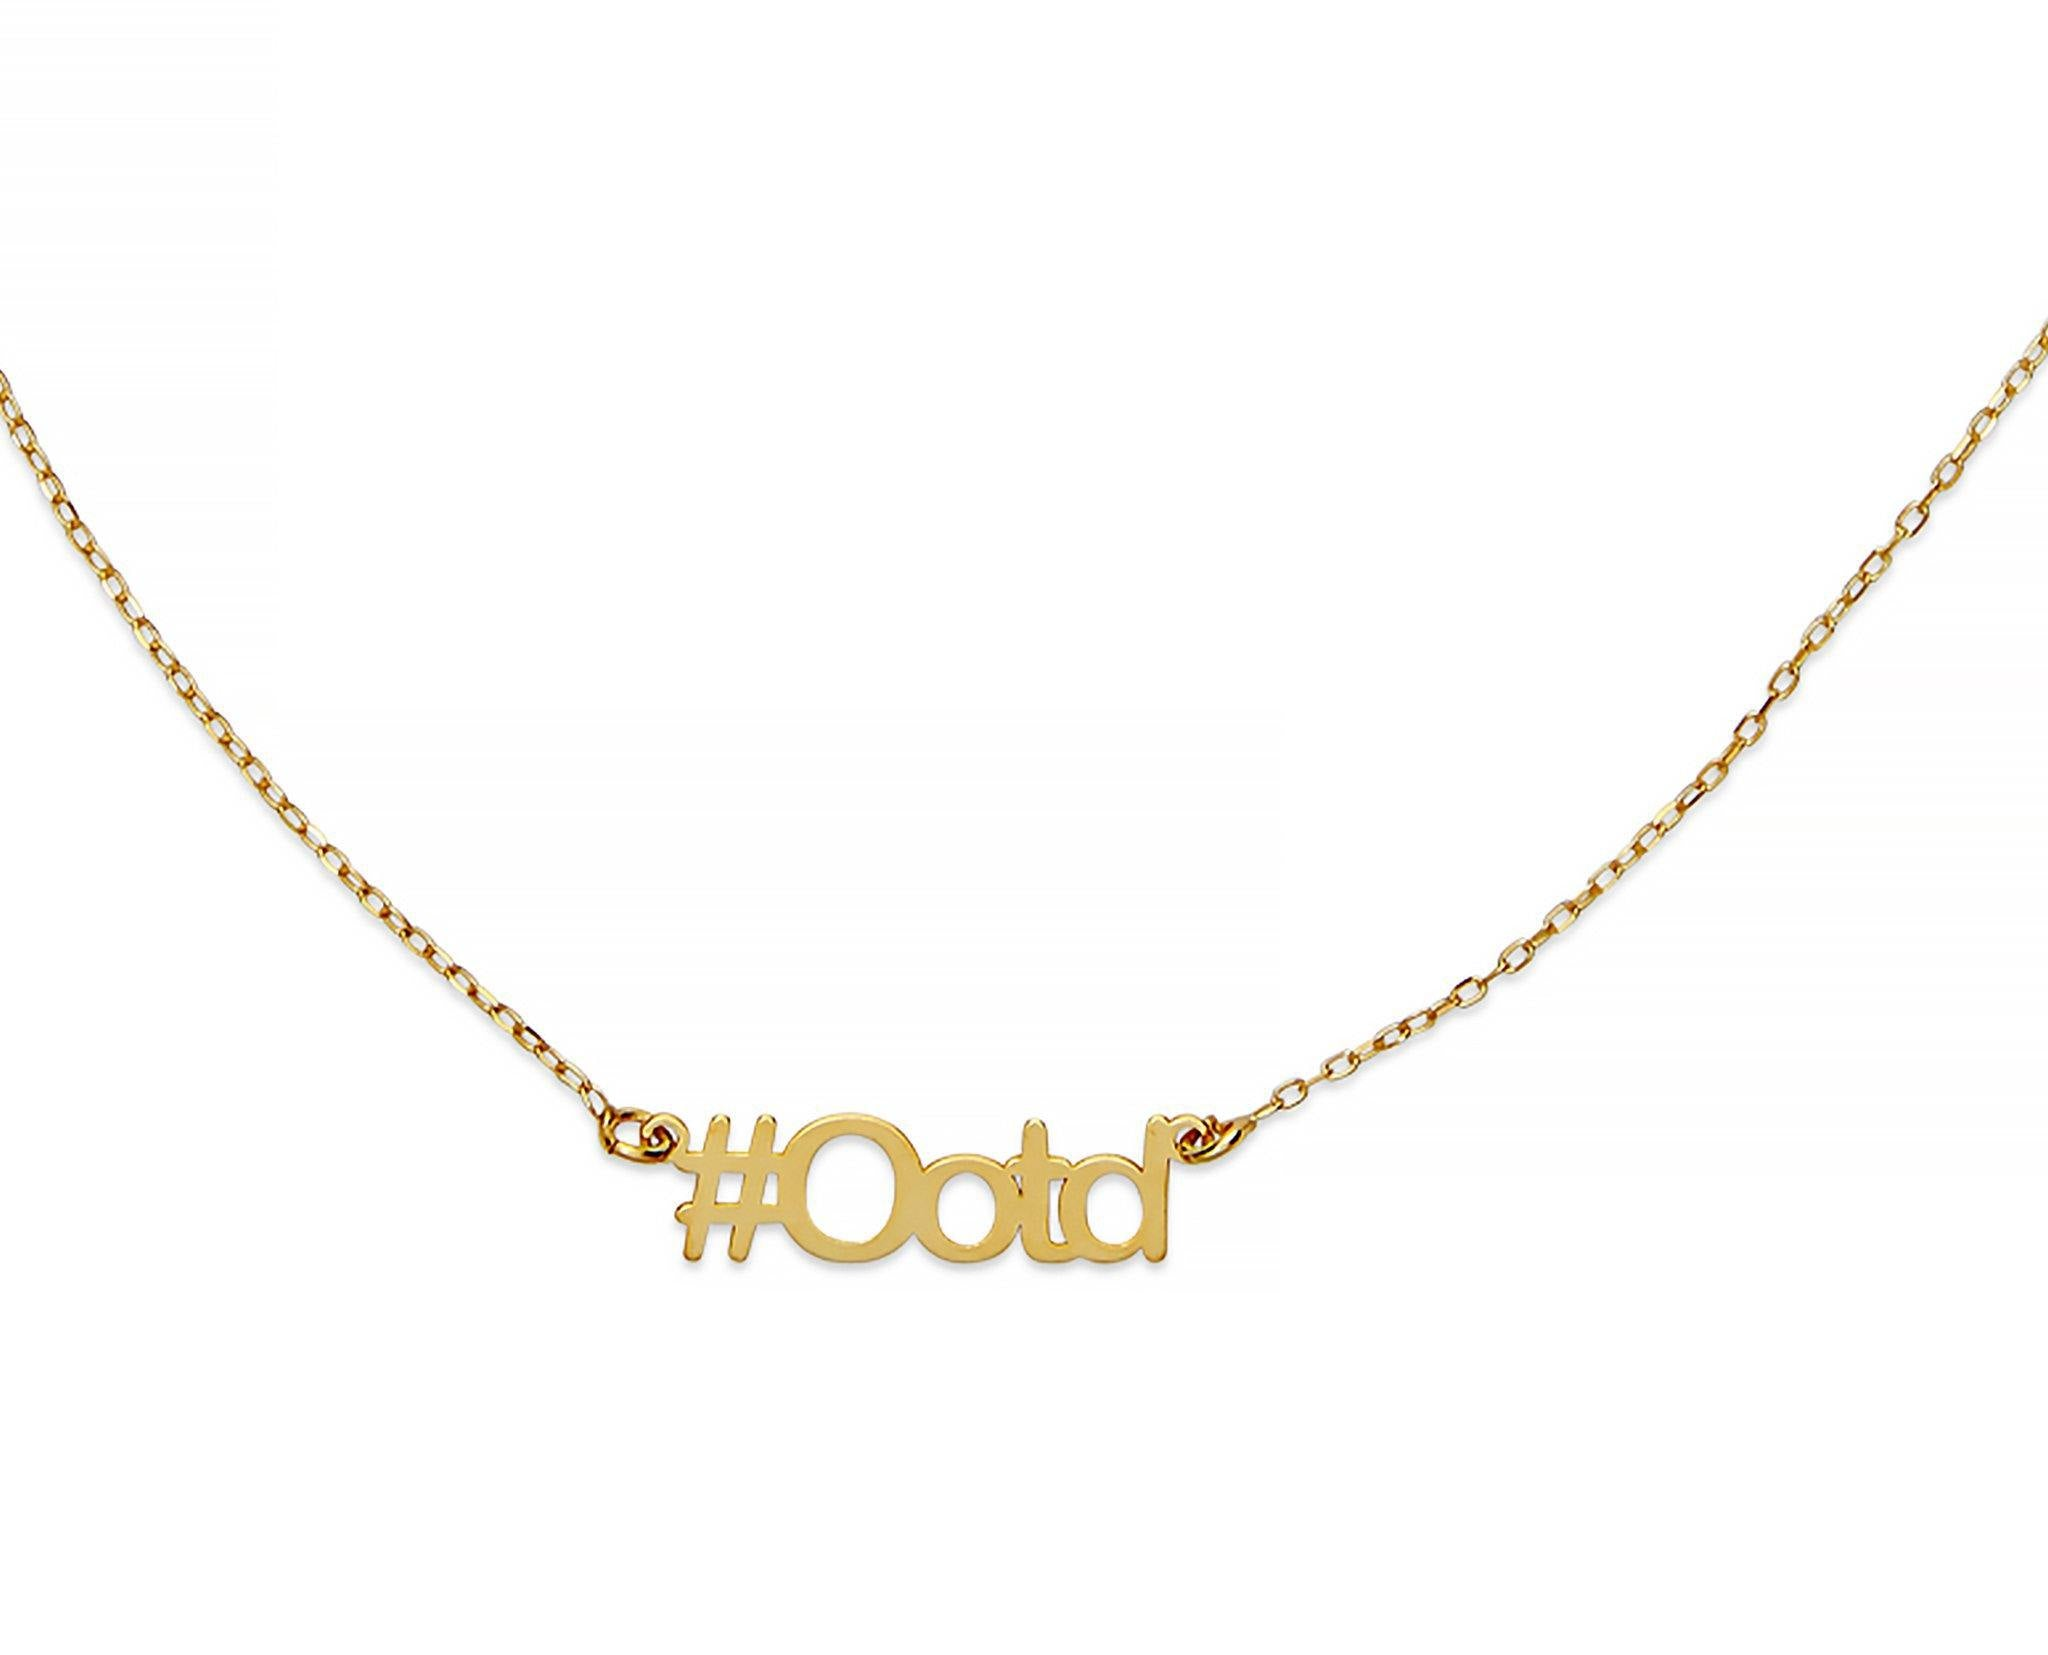 OOTD Hashtag Necklace - InclusiveJewelry